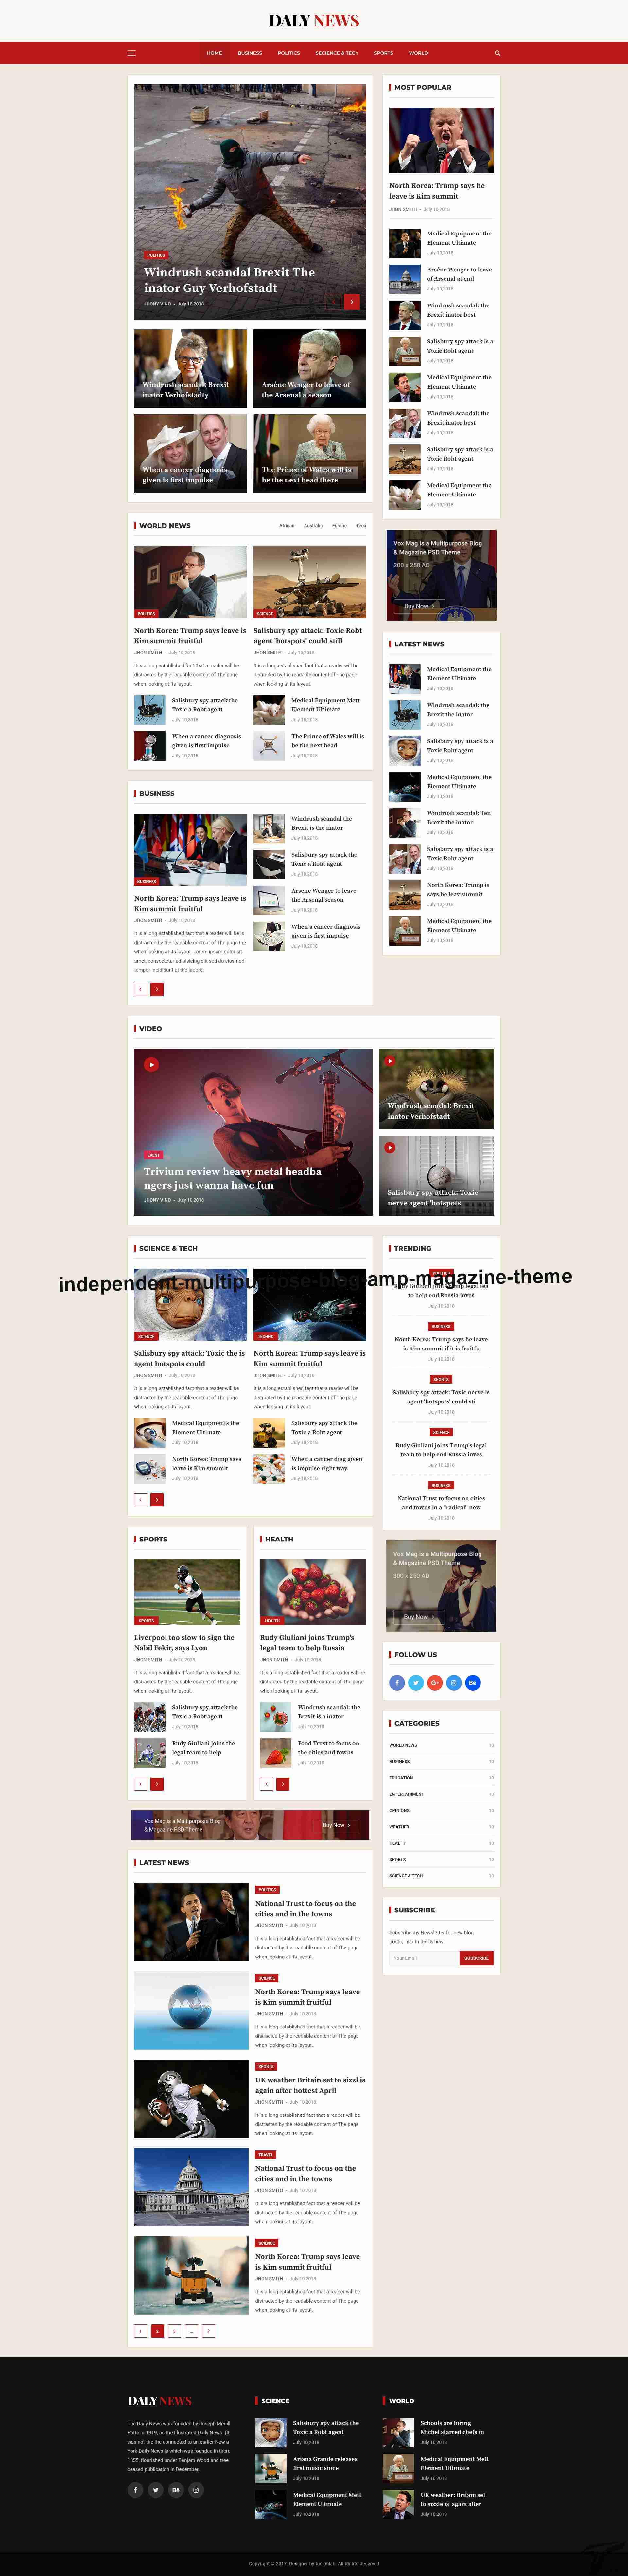 https://images.besthemes.com/images/h1_independent-multipurpose-blog-amp-magazine-theme9-_-249989416/Theme-s20s-Preview/08-Daily-s20s-News.jpg